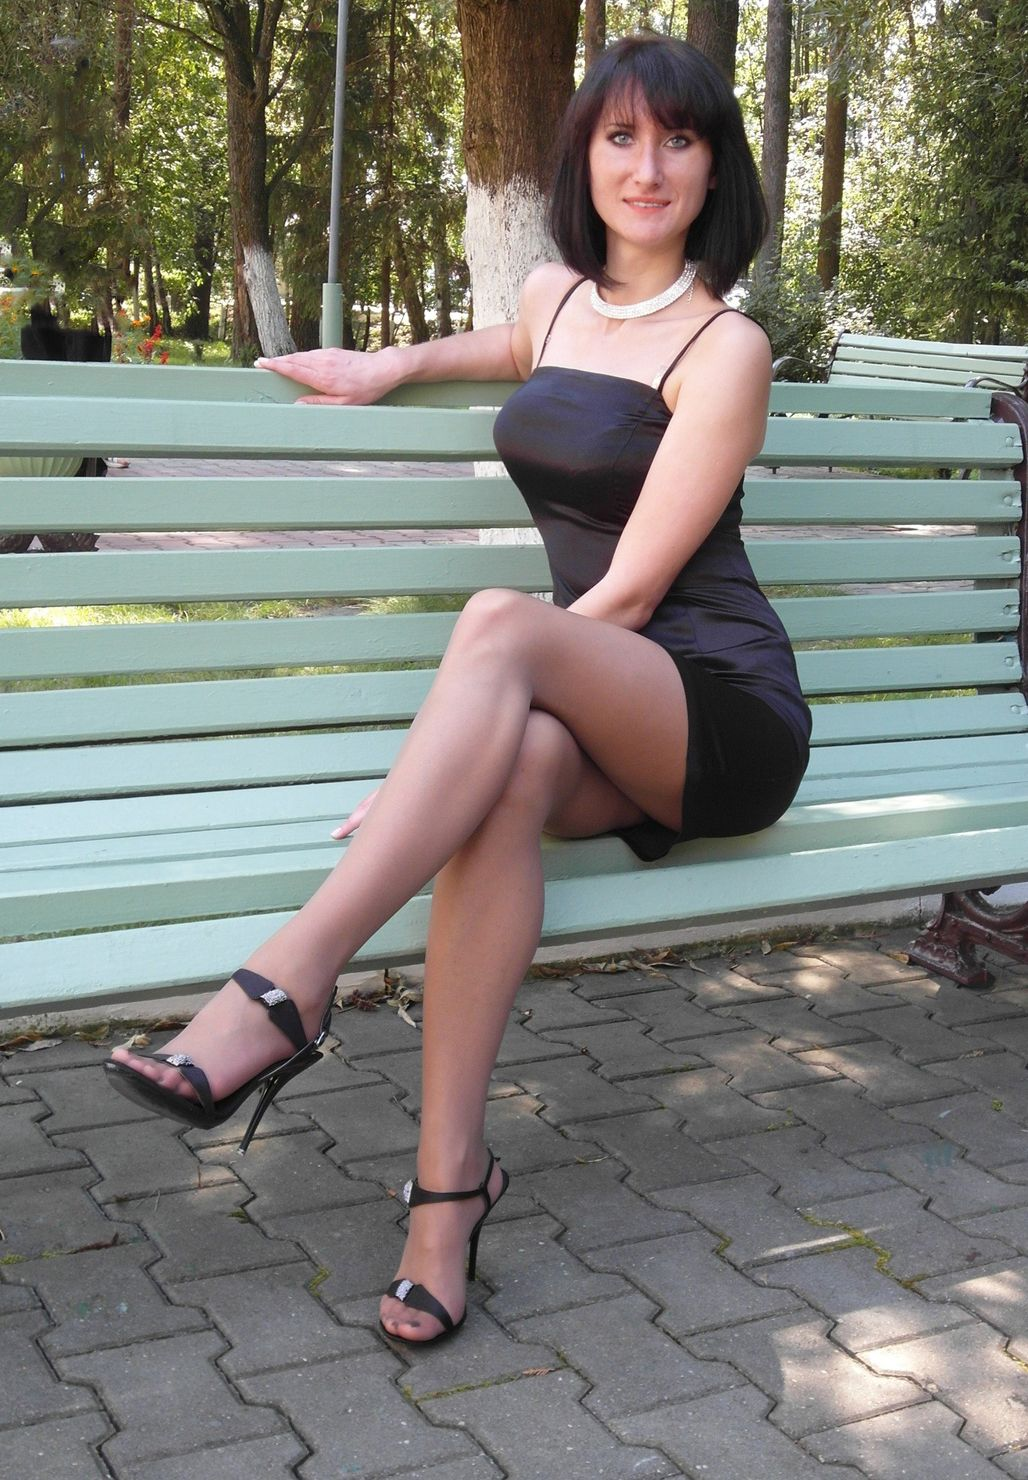 Pics of women wearing pantyhose